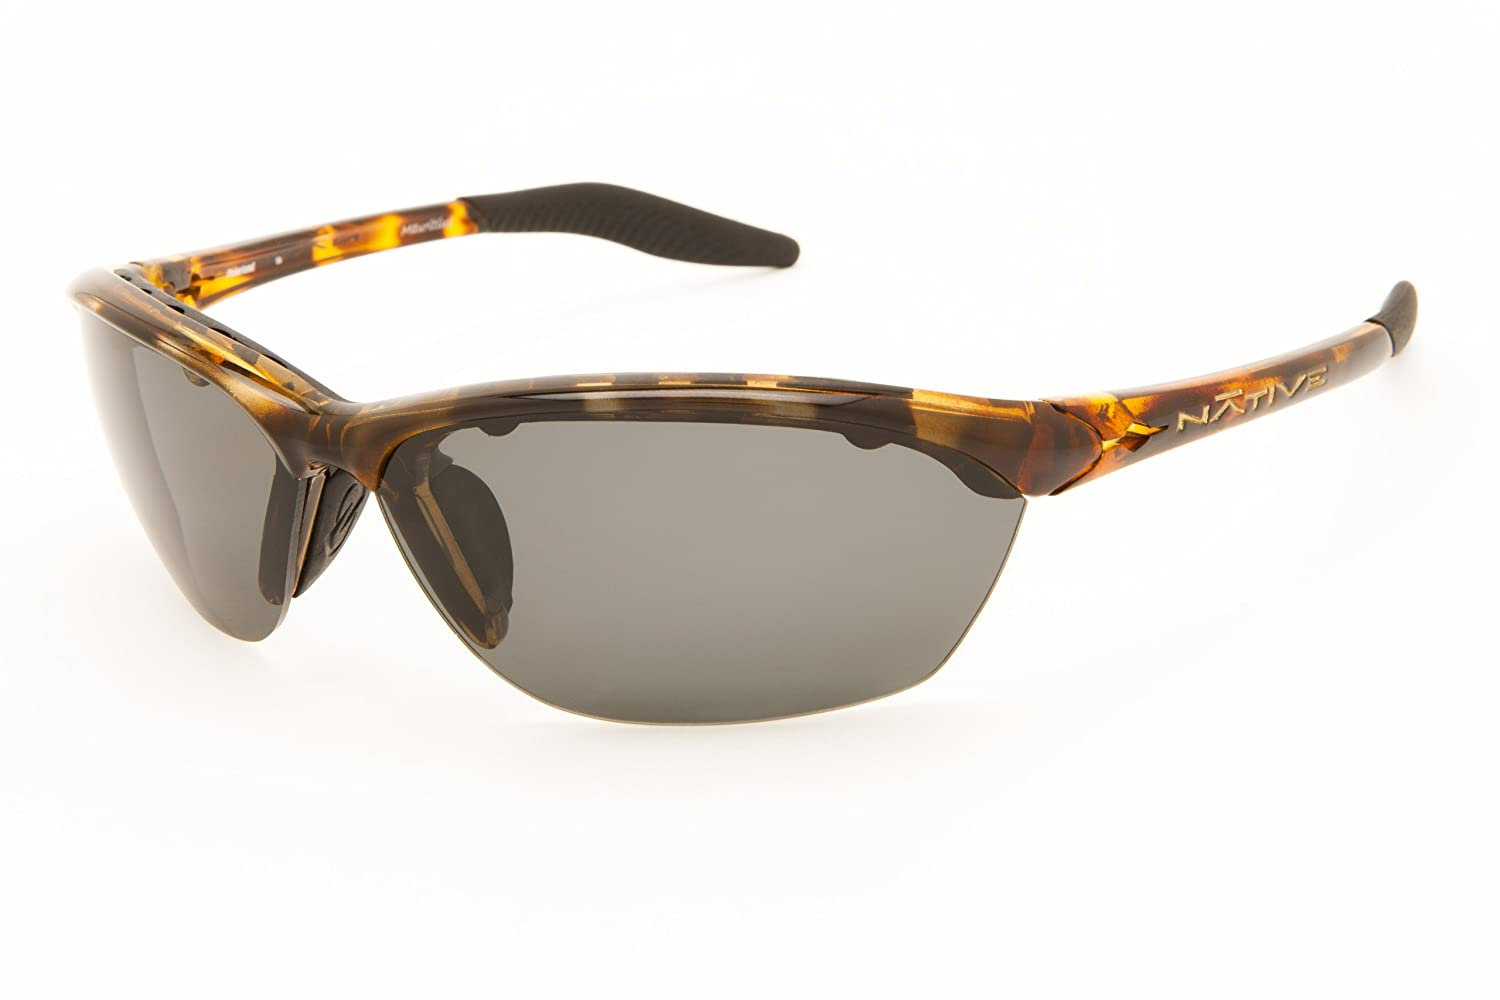 32c1512d9e6 Native Eyewear Hardtop Sunglasses